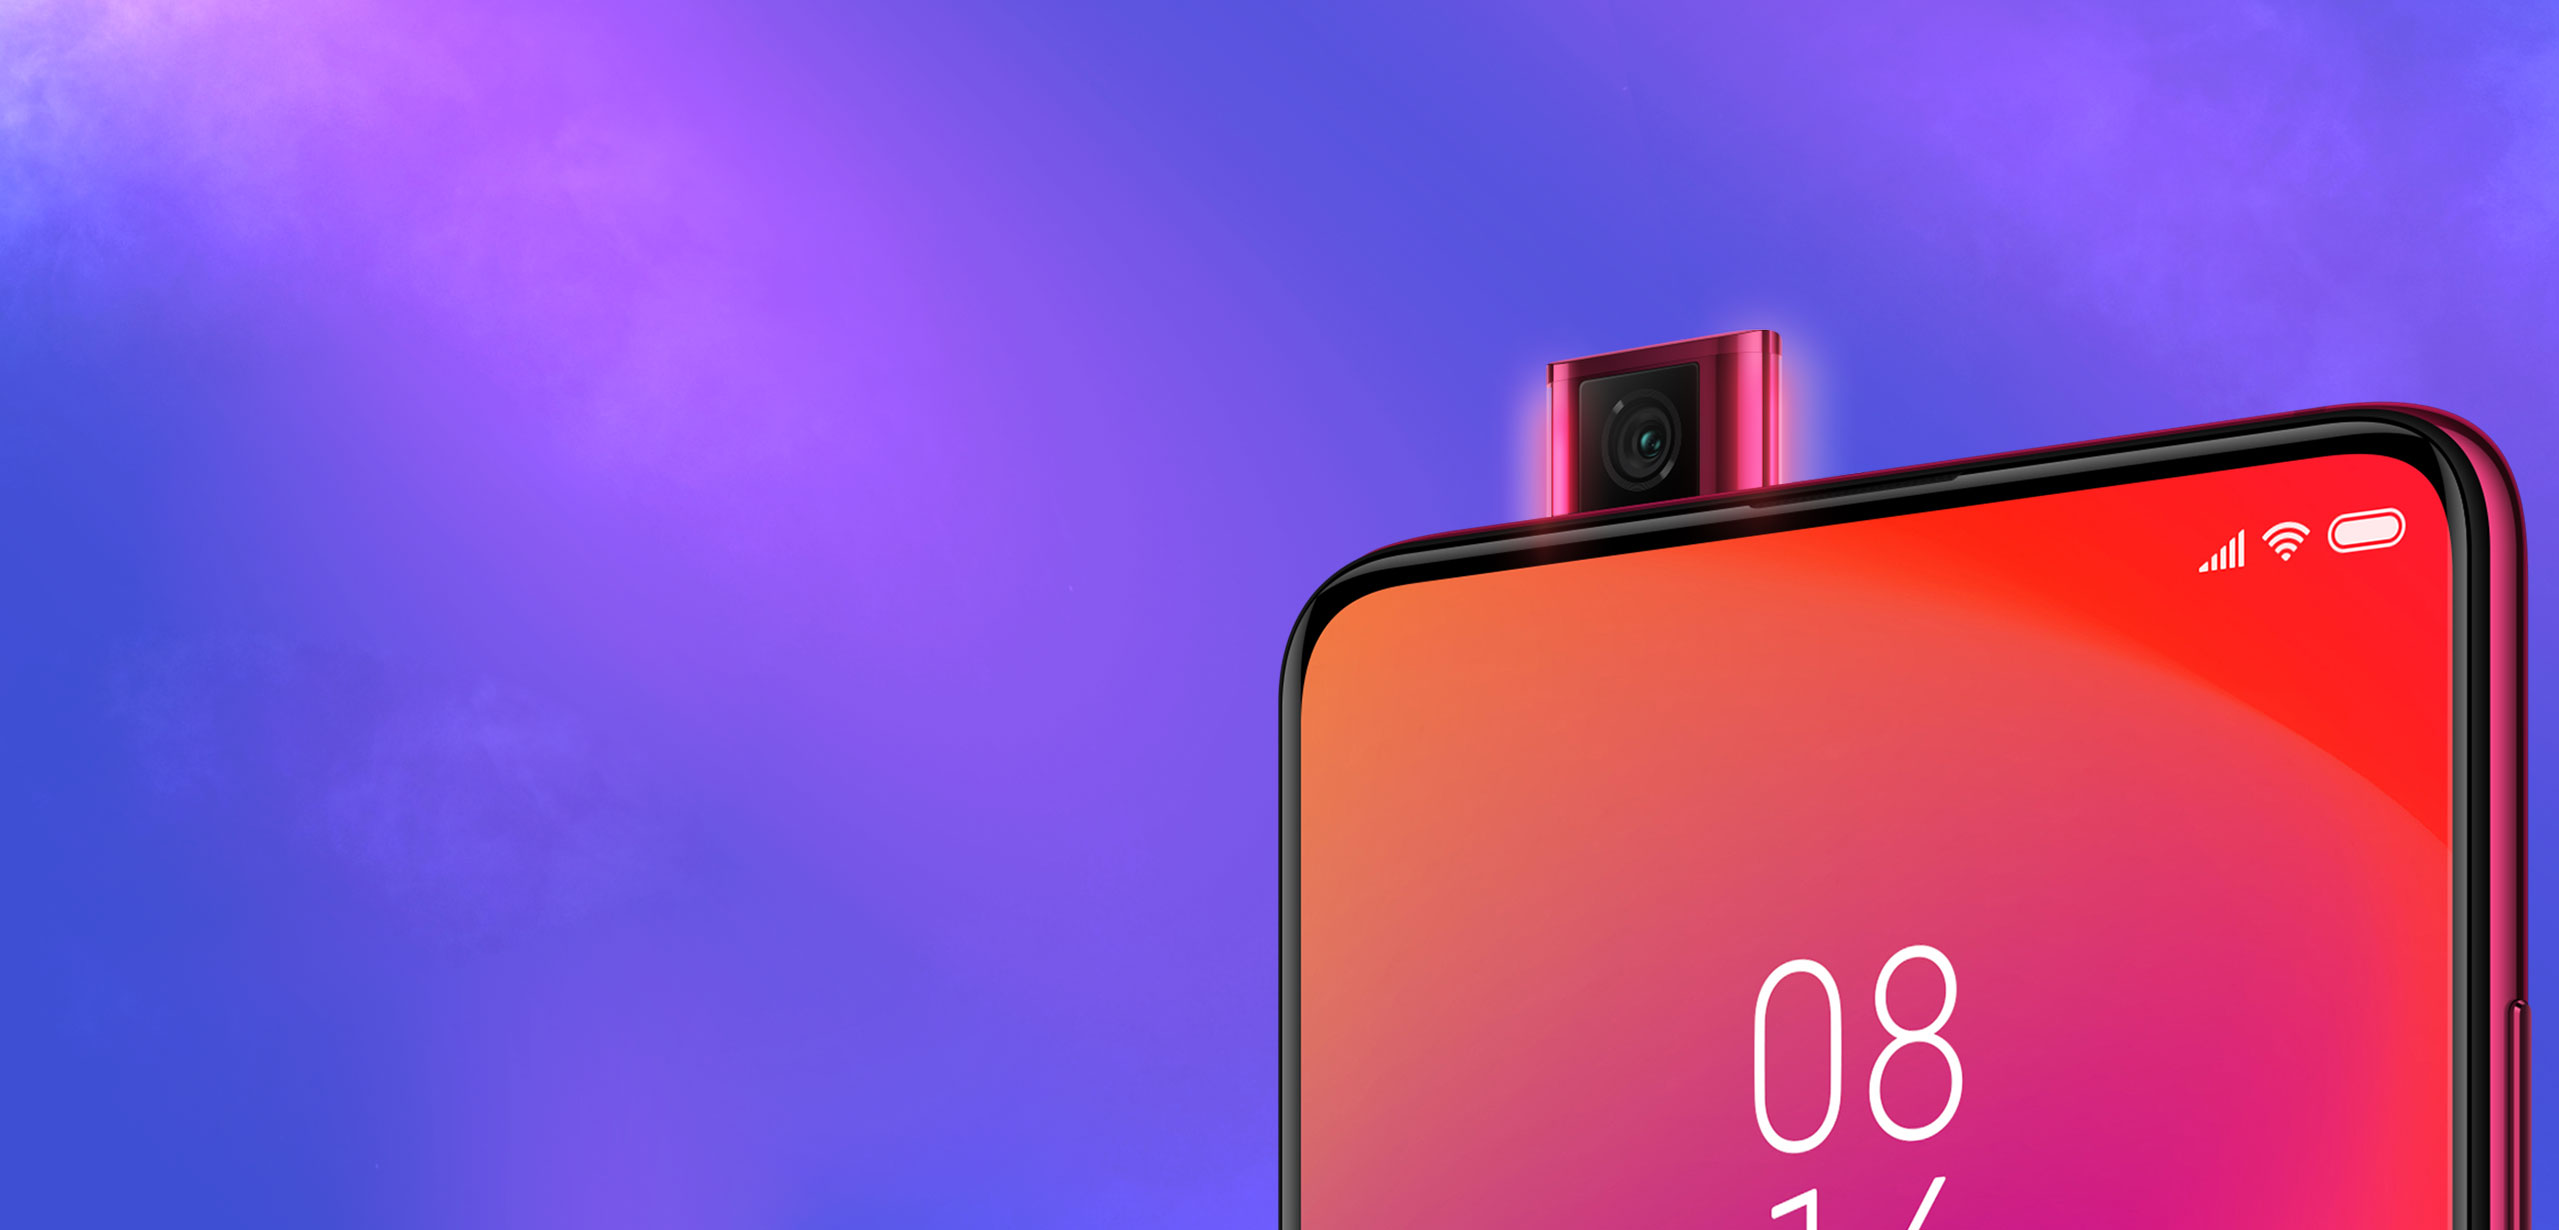 Redmi K20 & K20 Pro launched in India, price starts at Rs 21,999